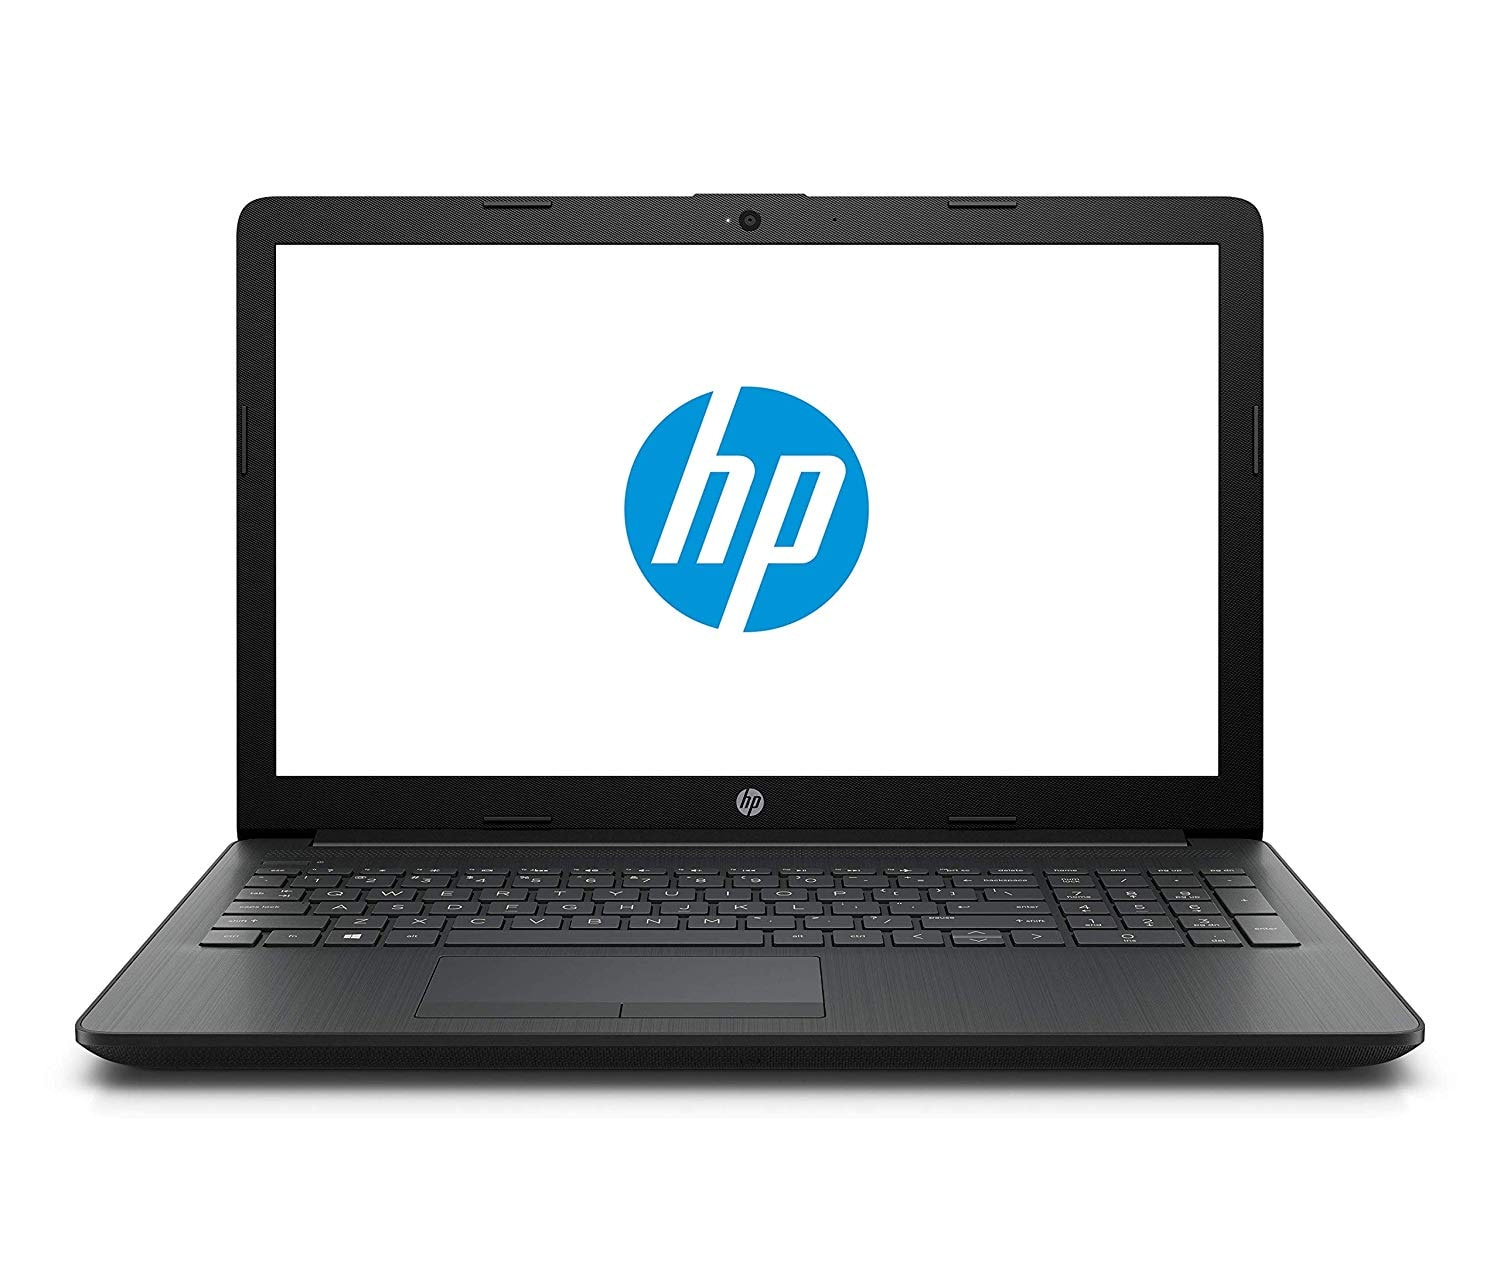 HP 15q-ds0009TU 2018 15.6-inch Laptop (8th Gen i5-8250U/8GB/1TB/Free DOS 2.0/Integrated Graphics) (Sparkling Black)